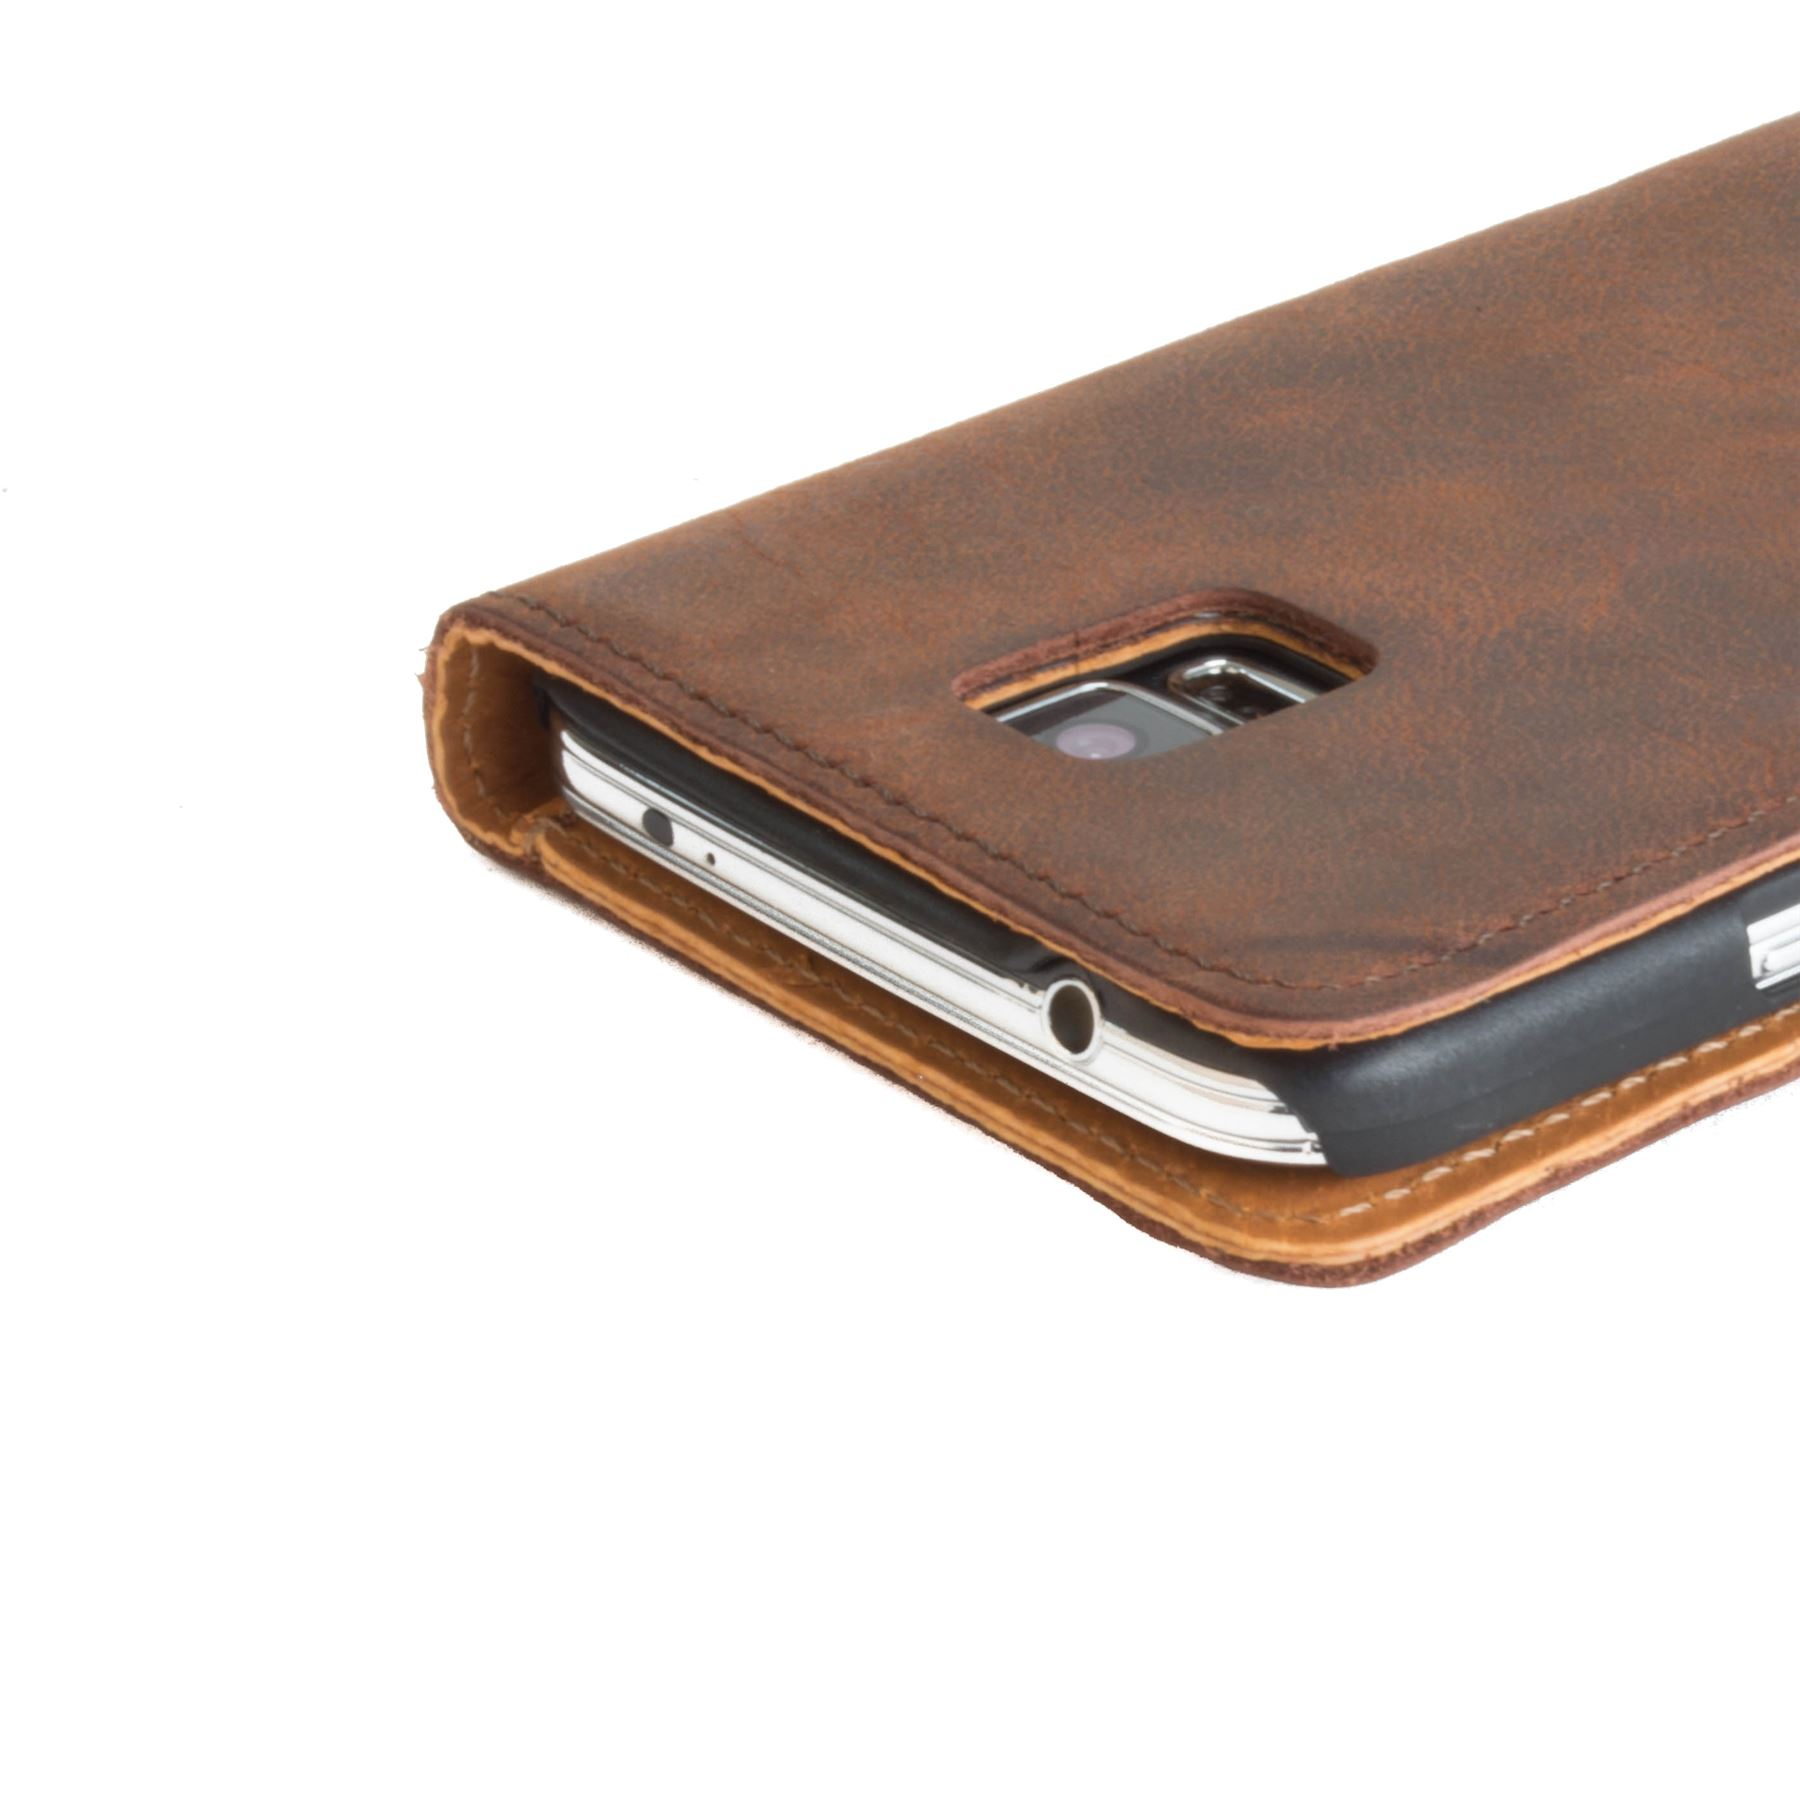 on sale 35517 c744d Details about Snakehive Samsung Galaxy S5 Premium Genuine Leather Wallet  Case w/ Card Slots